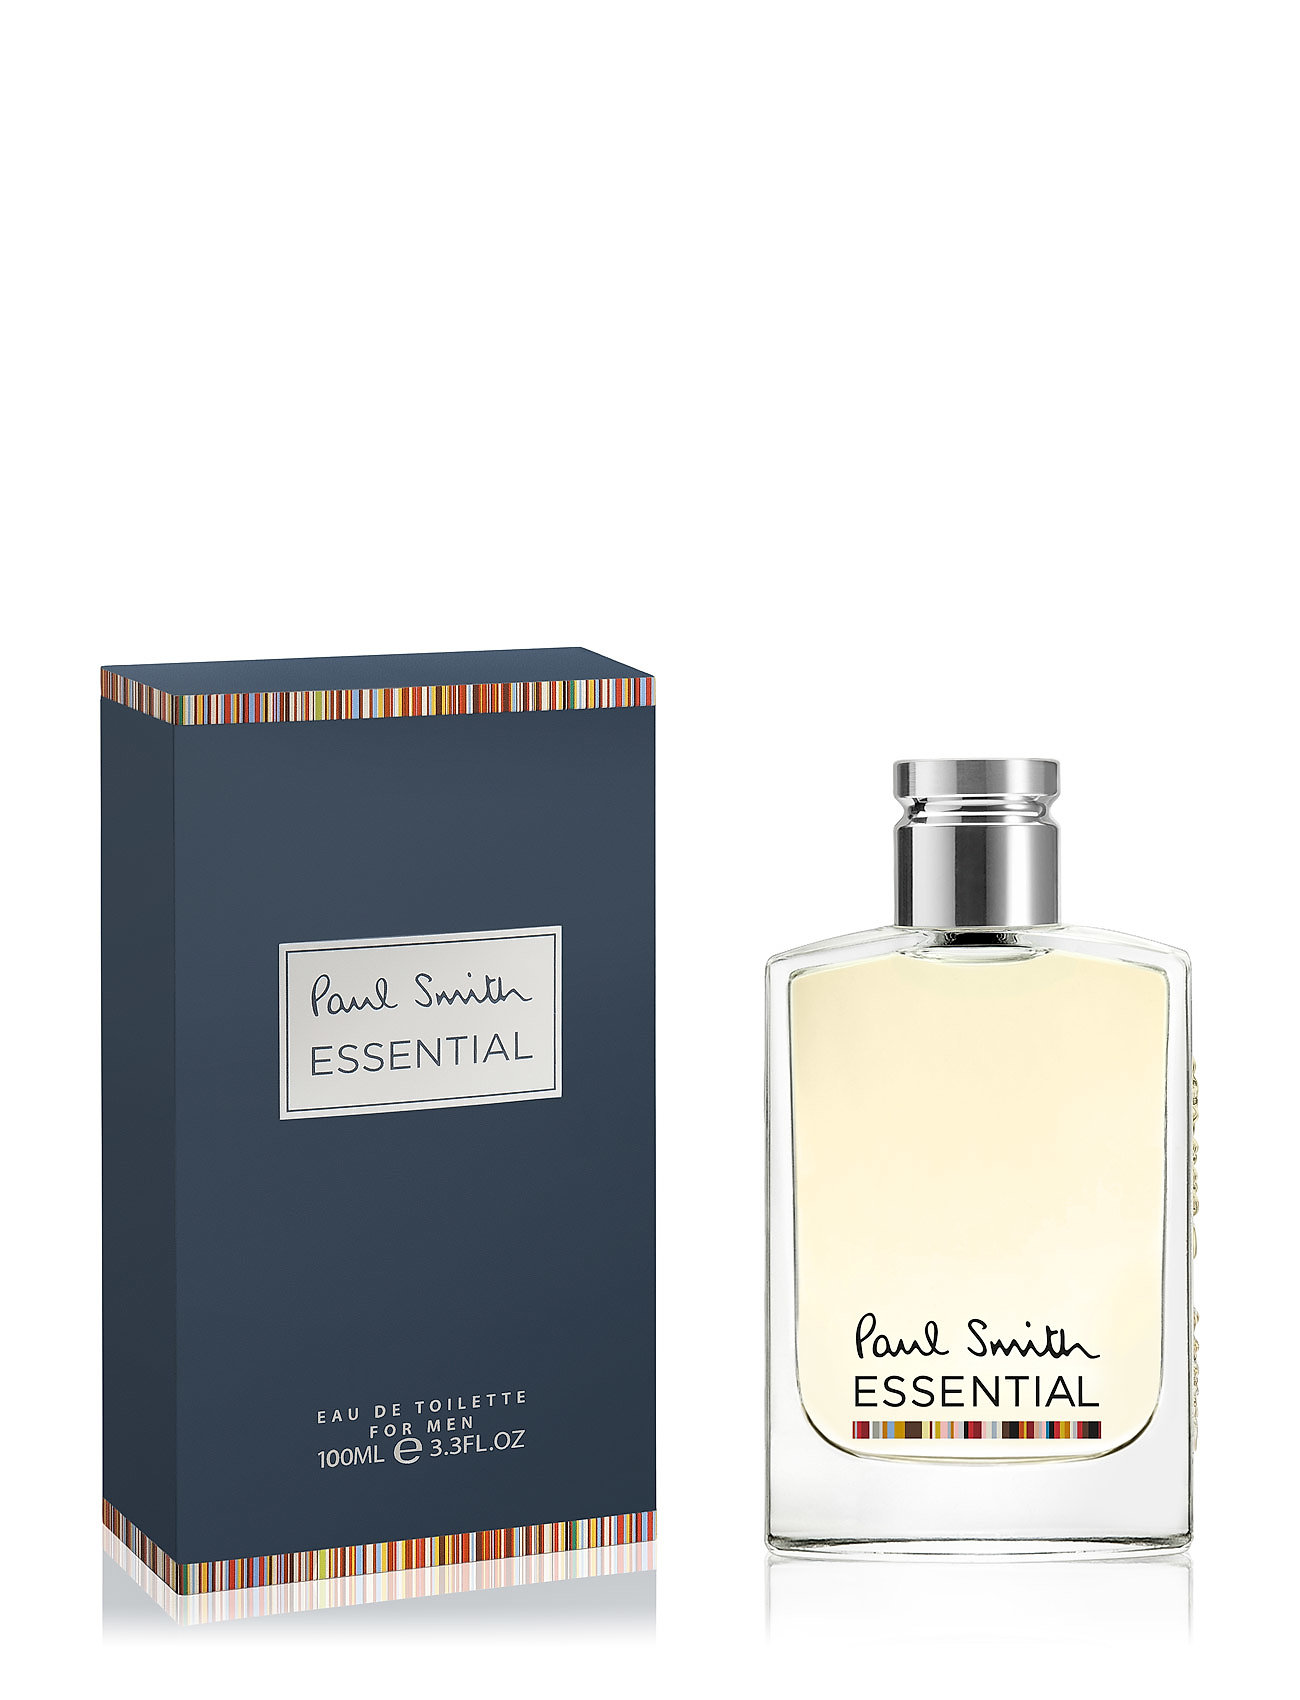 paul smith – Essential eau de toilette på boozt.com dk